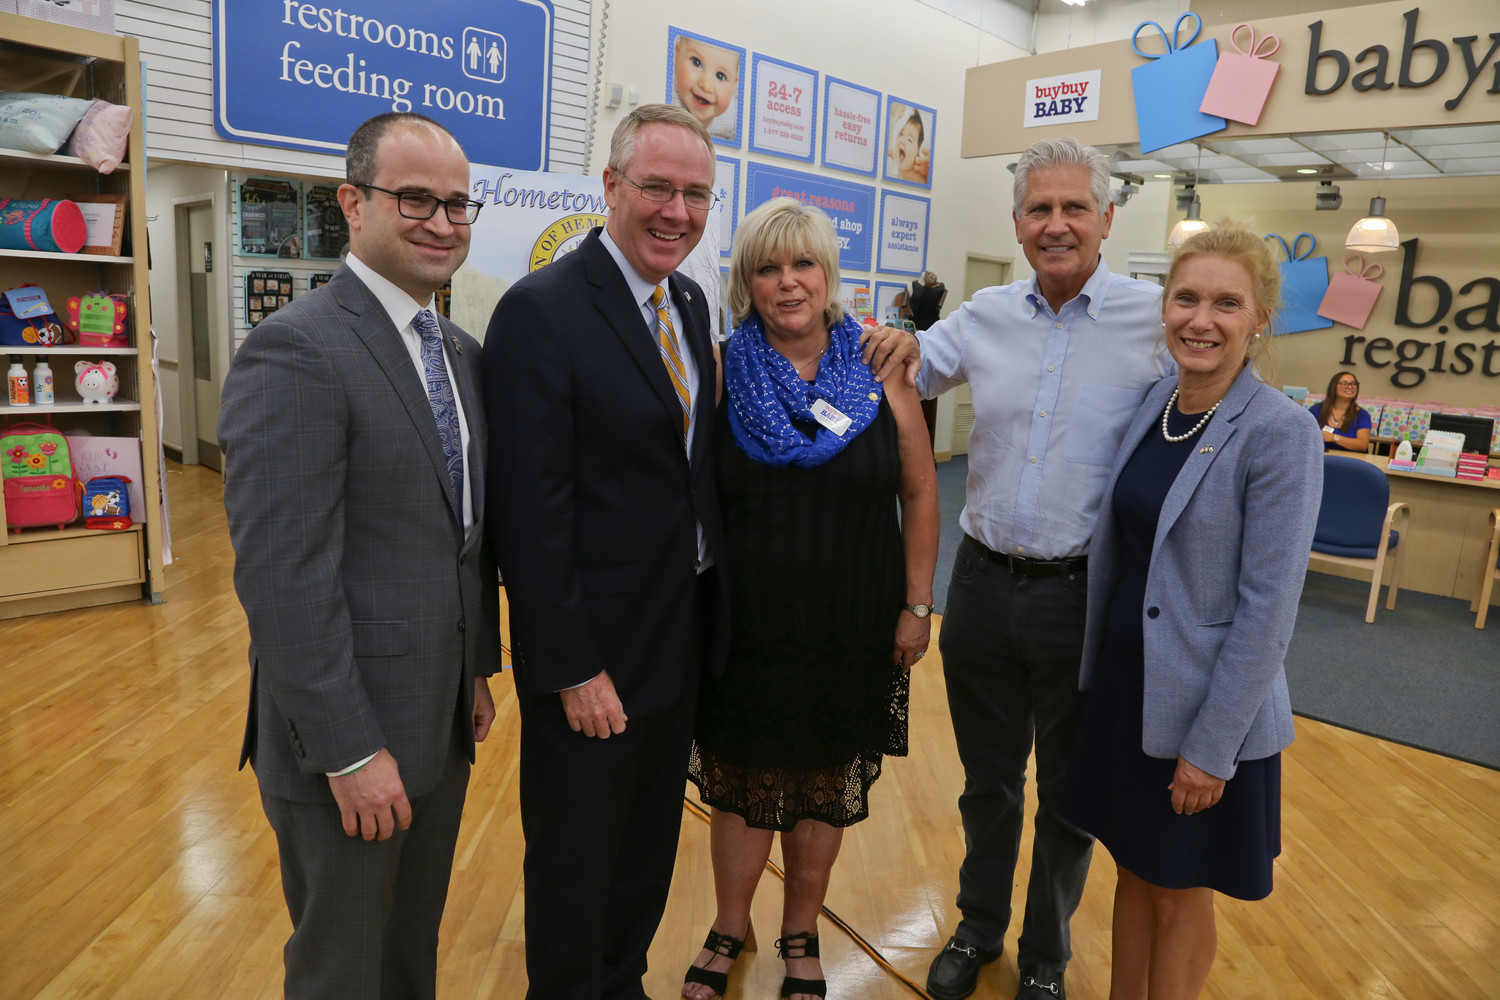 Kathy Falco, center, flanked by Assemblyman Ed Ra, from left, Town of Hempstead Receiver of Taxes Don Clavin, Town Councilor Bruce Blakeman and State Sen. Elaine Phillips.